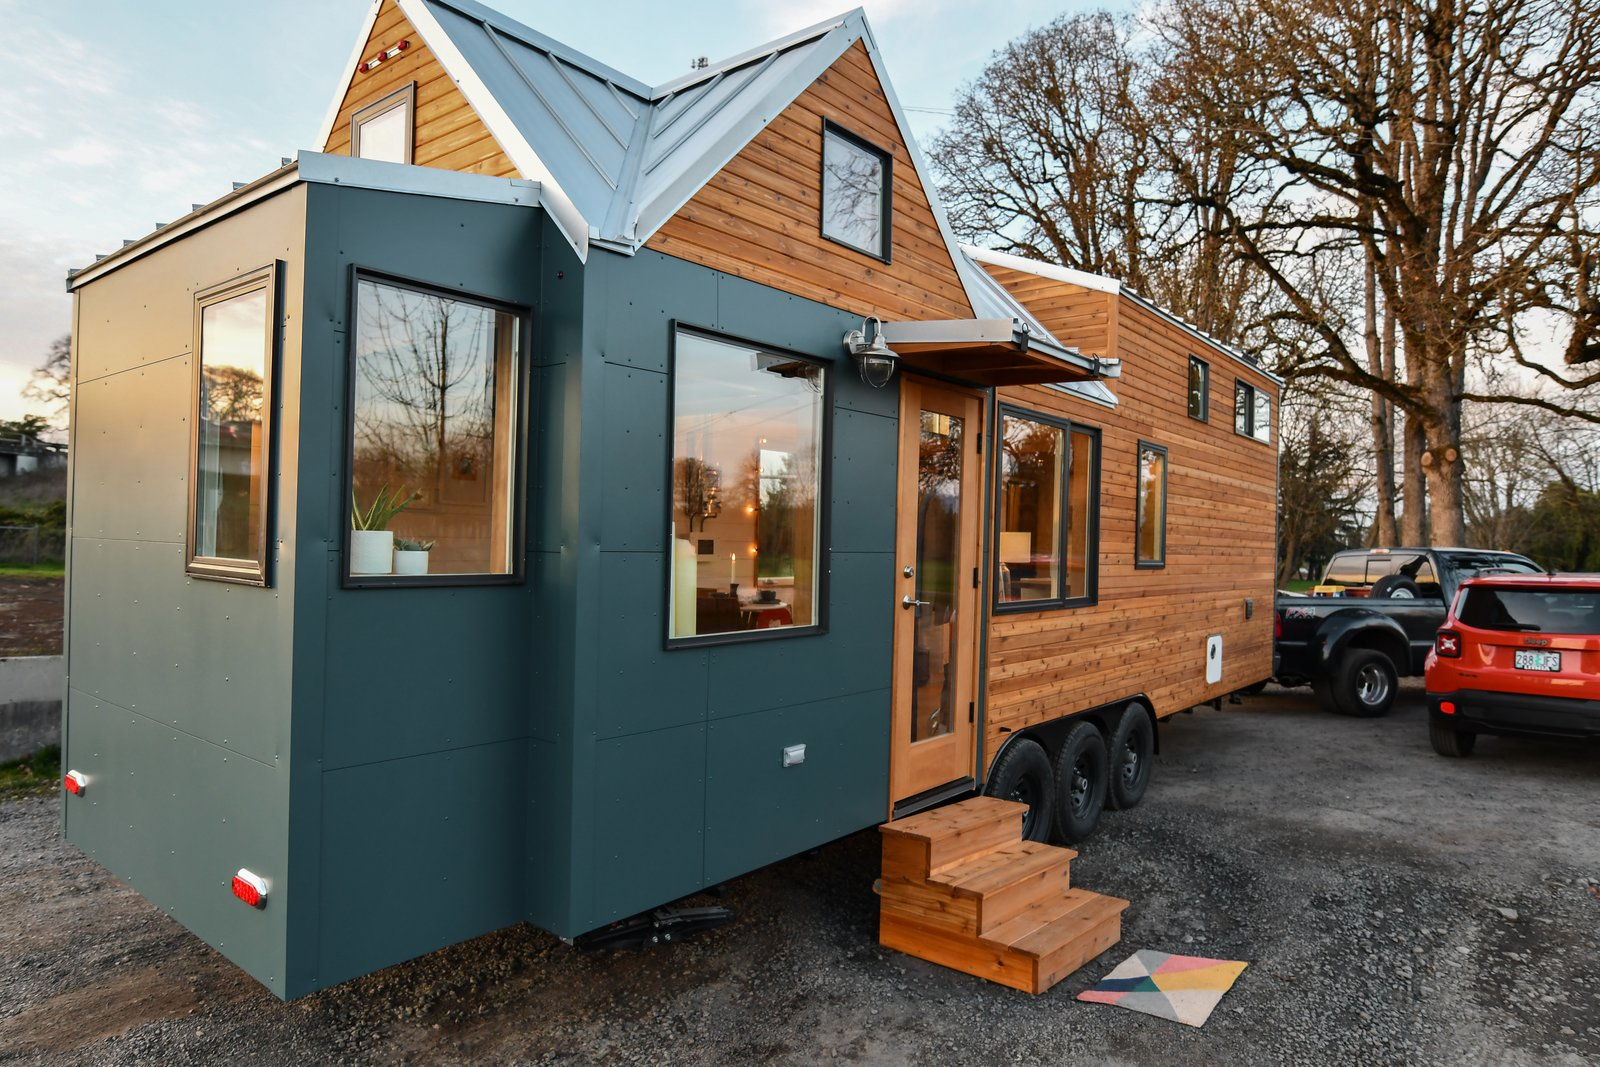 Tiny Home Designs: Not So Tiny Tiny, For A Doctor In California Modern Home